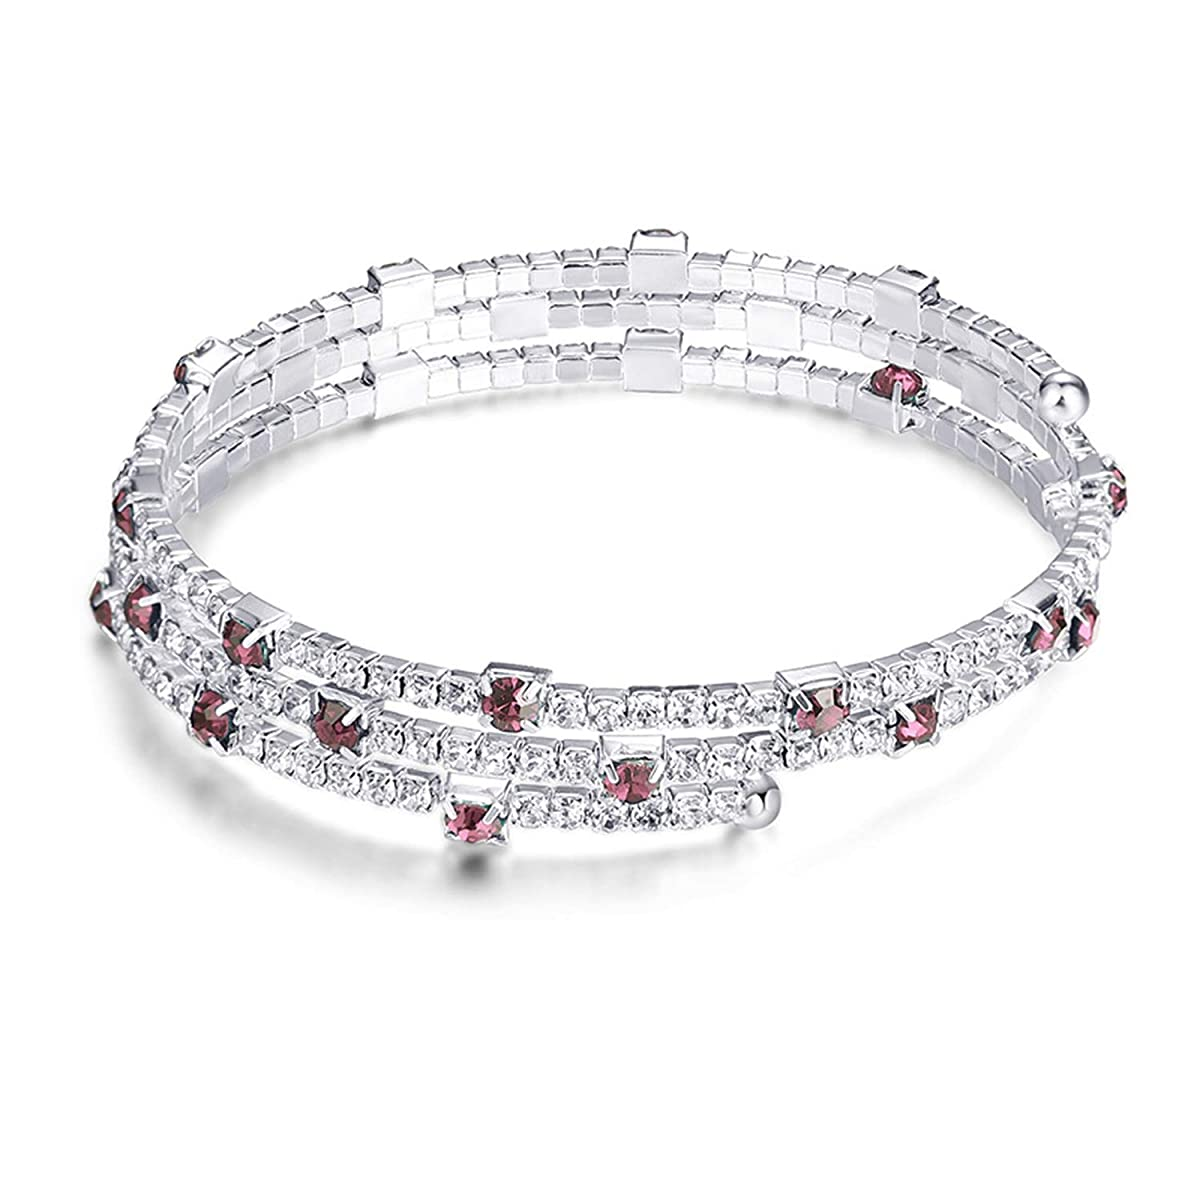 DLNCTD Fashion Layered Crystal Charm Bracelet Bangles Women Silver Color Open Cuff Bangle Wedding Anniversary Jewelry Gift